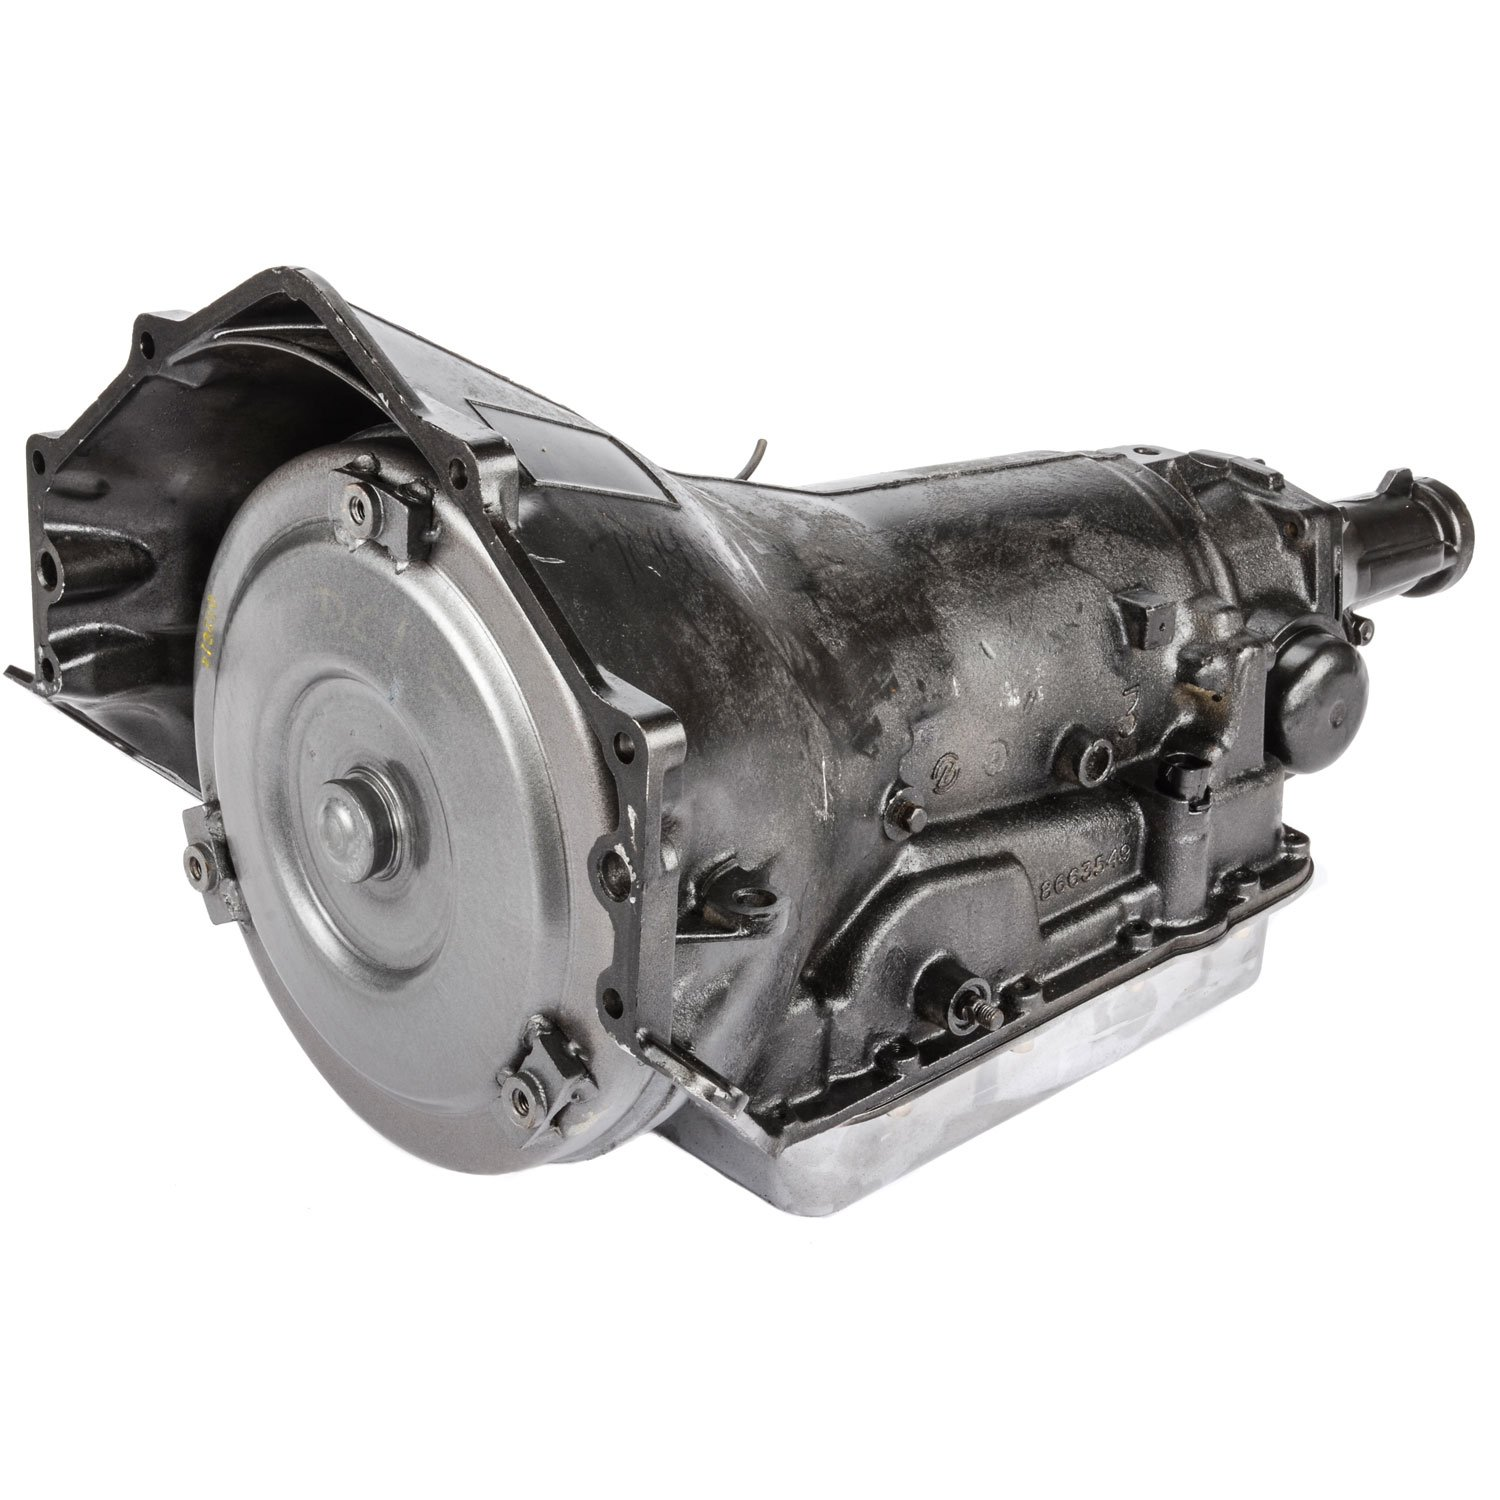 700R4 Transmission Performance Automatic PA70104